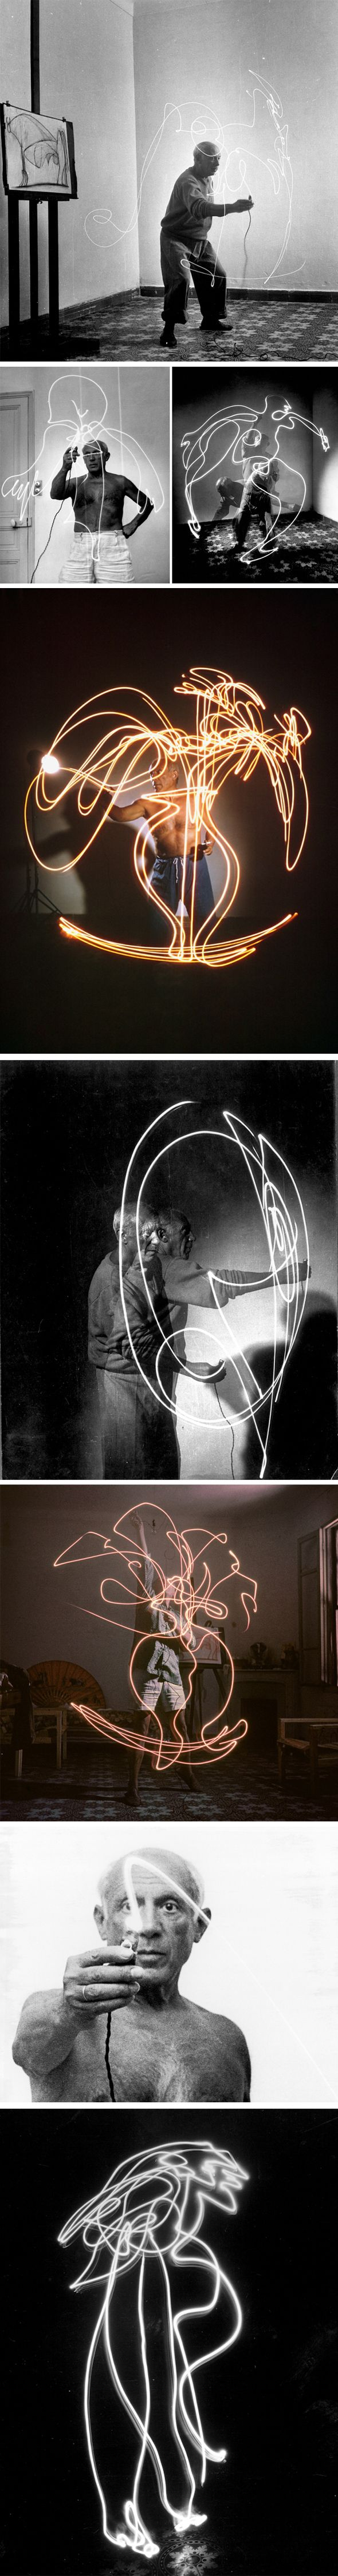 Light Drawings Pablo Picasso